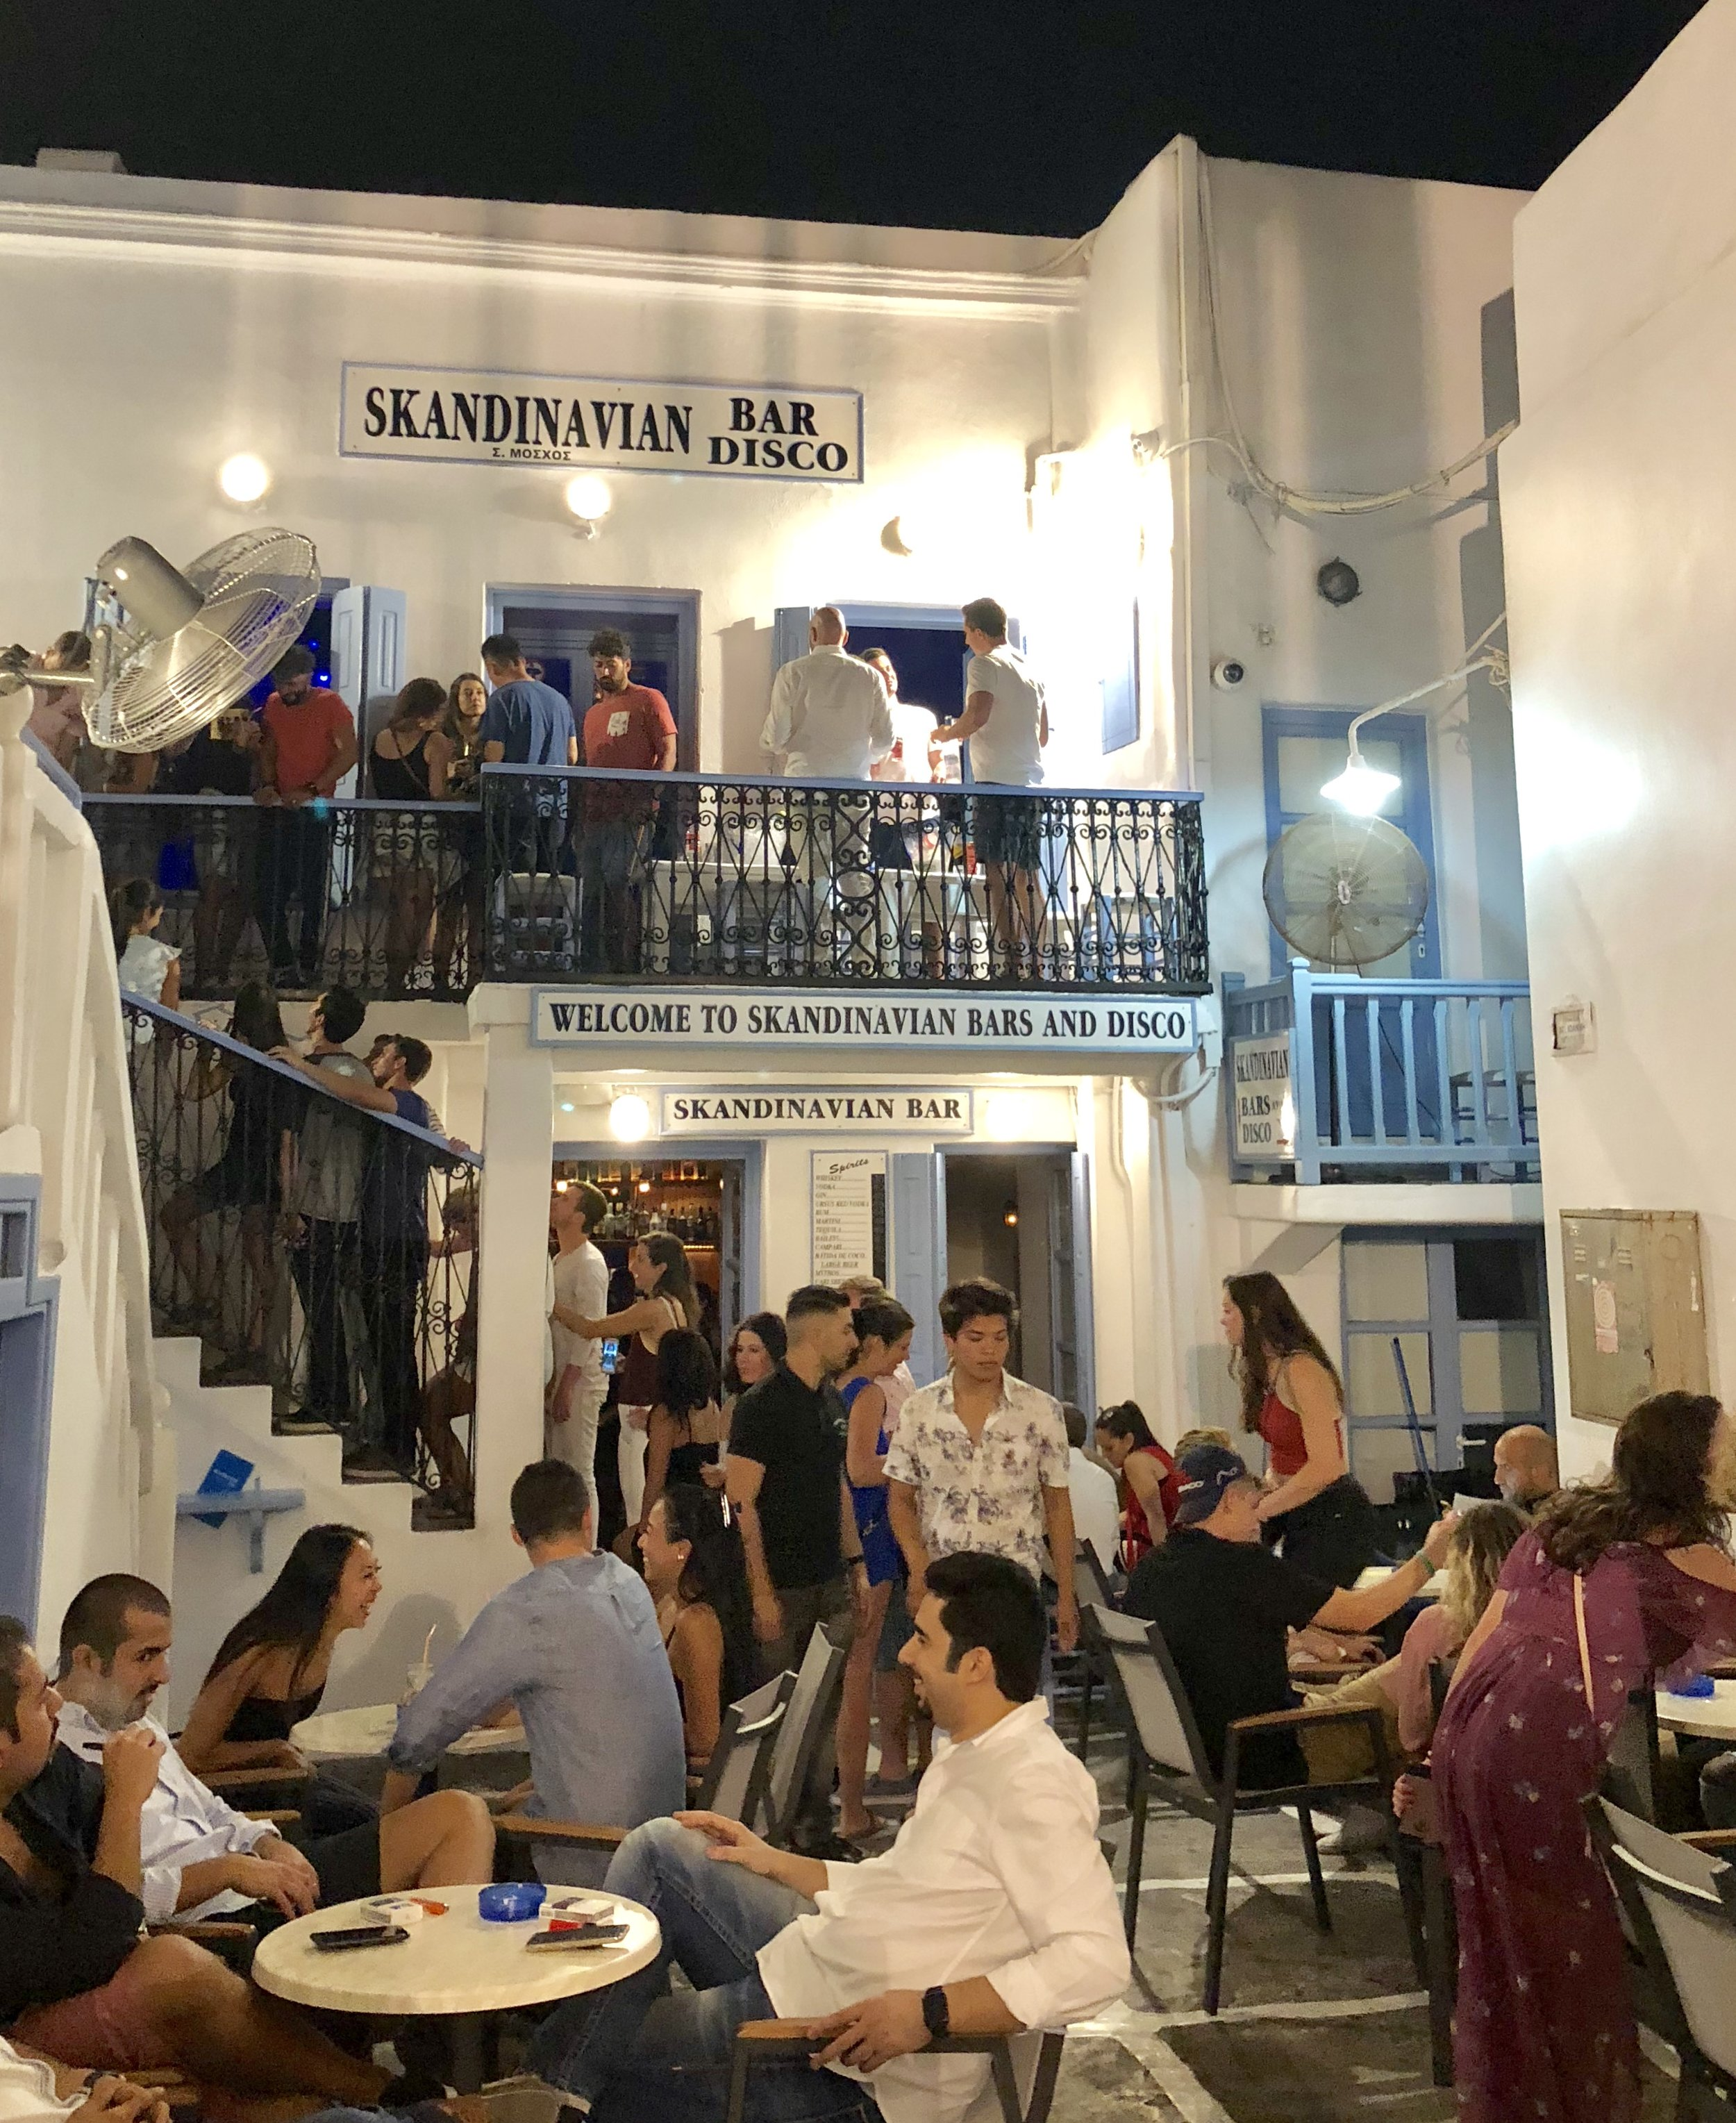 Skandinavian Bar - one of the most popular nightclubs on the island.